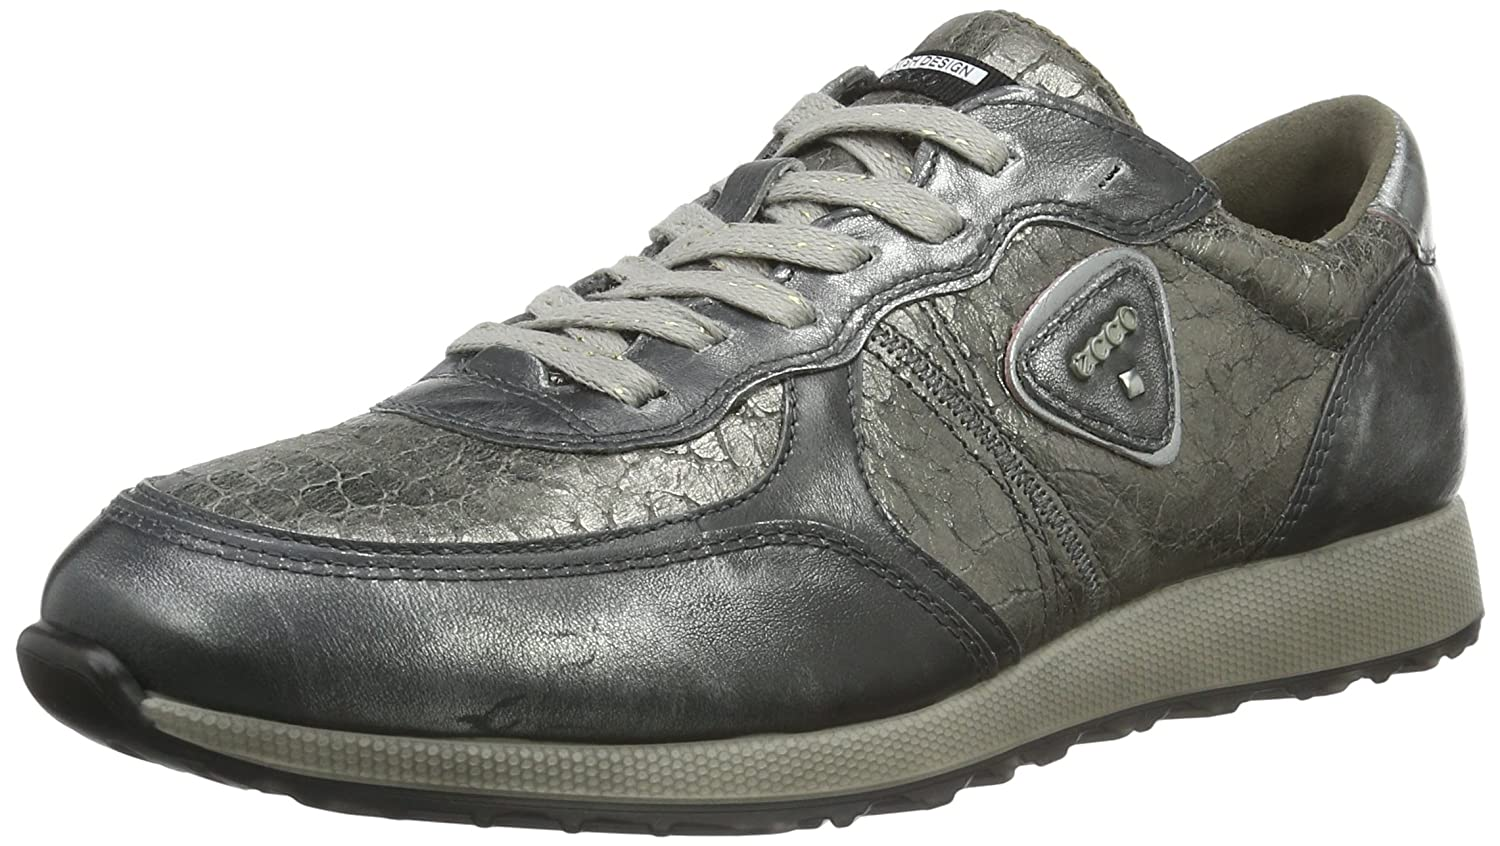 Ecco Damen Sneak Ladies Sneaker Grau (Alusilver/Warm Grey/Alusilver50149)